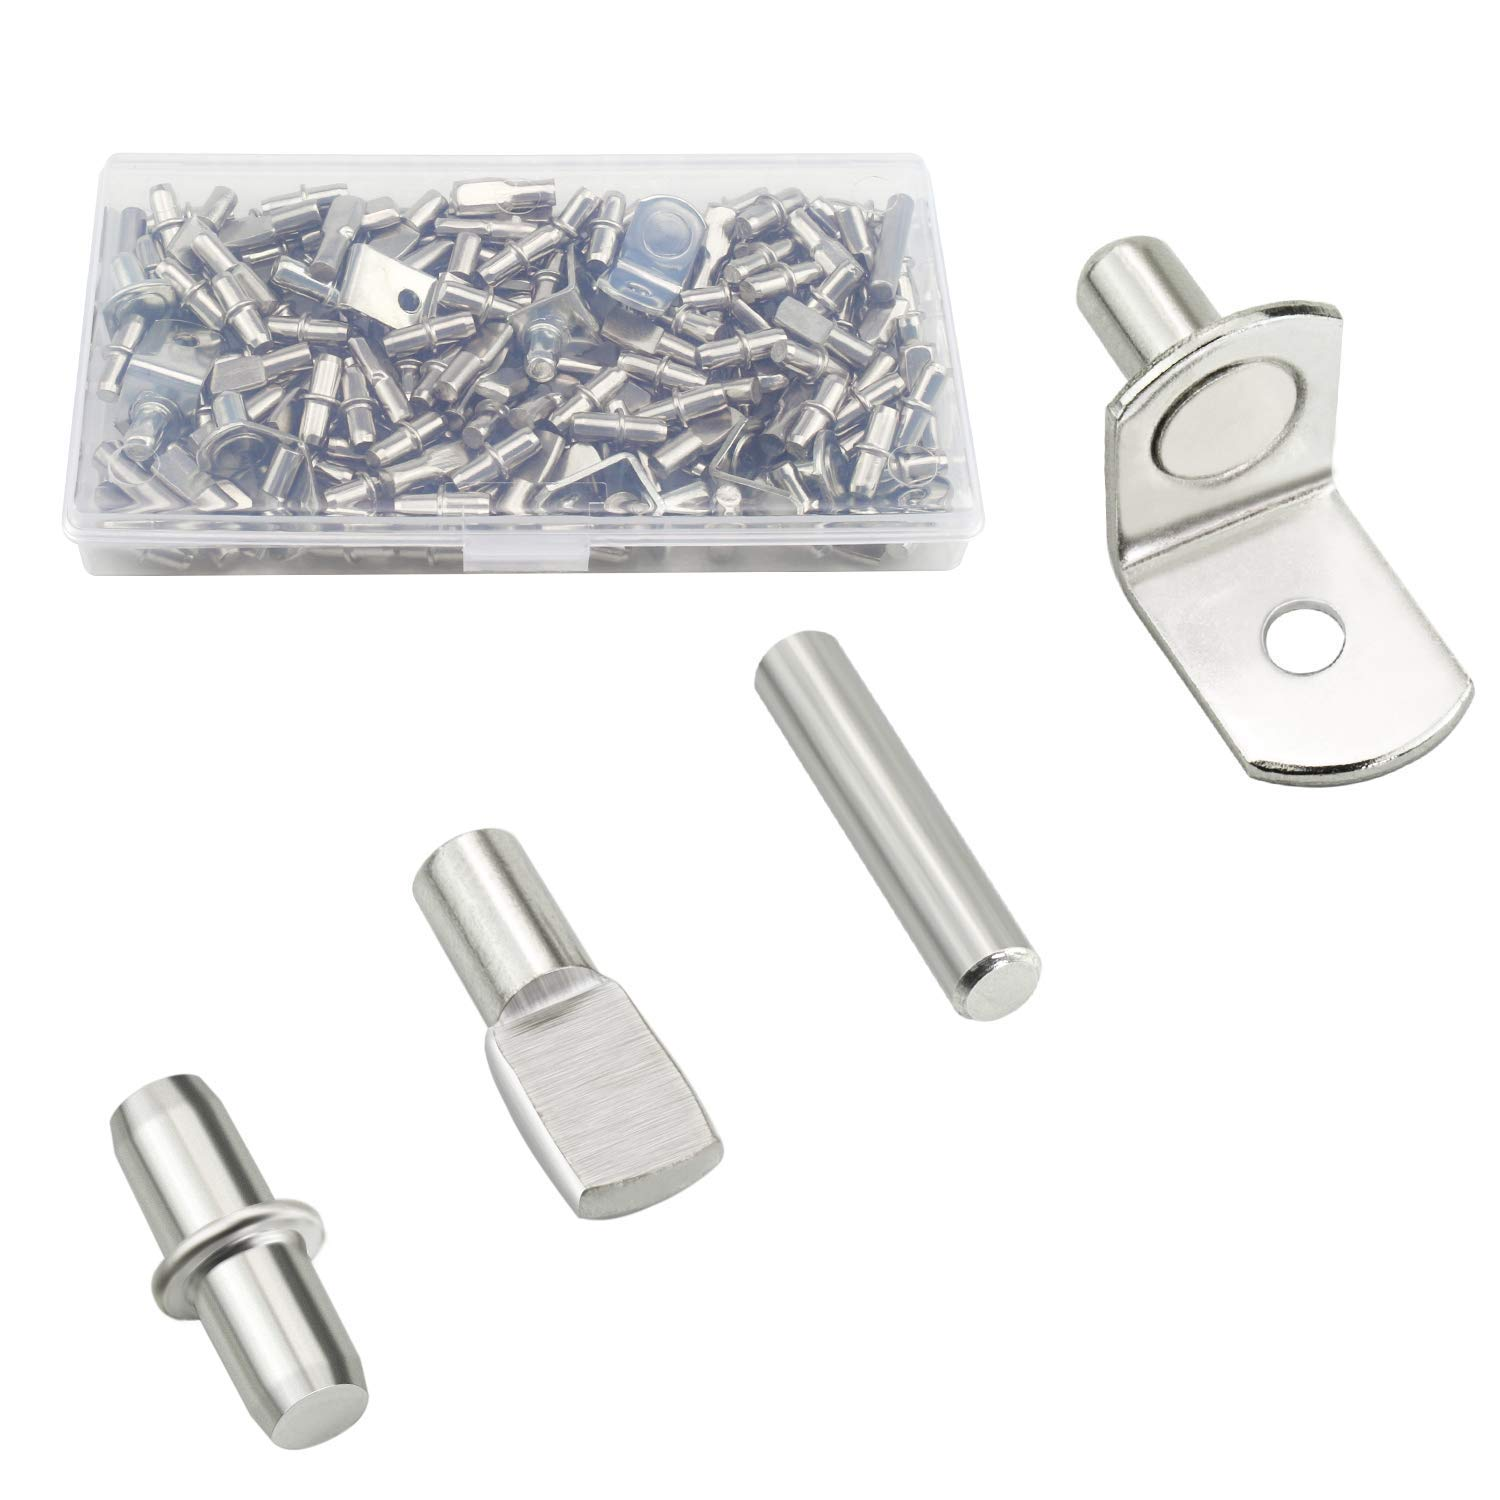 Pingranso 5 mm x 24 mm Dowel Pin, Stainless Steel Shelf Support Pin Fasten Elements, 20Pcs